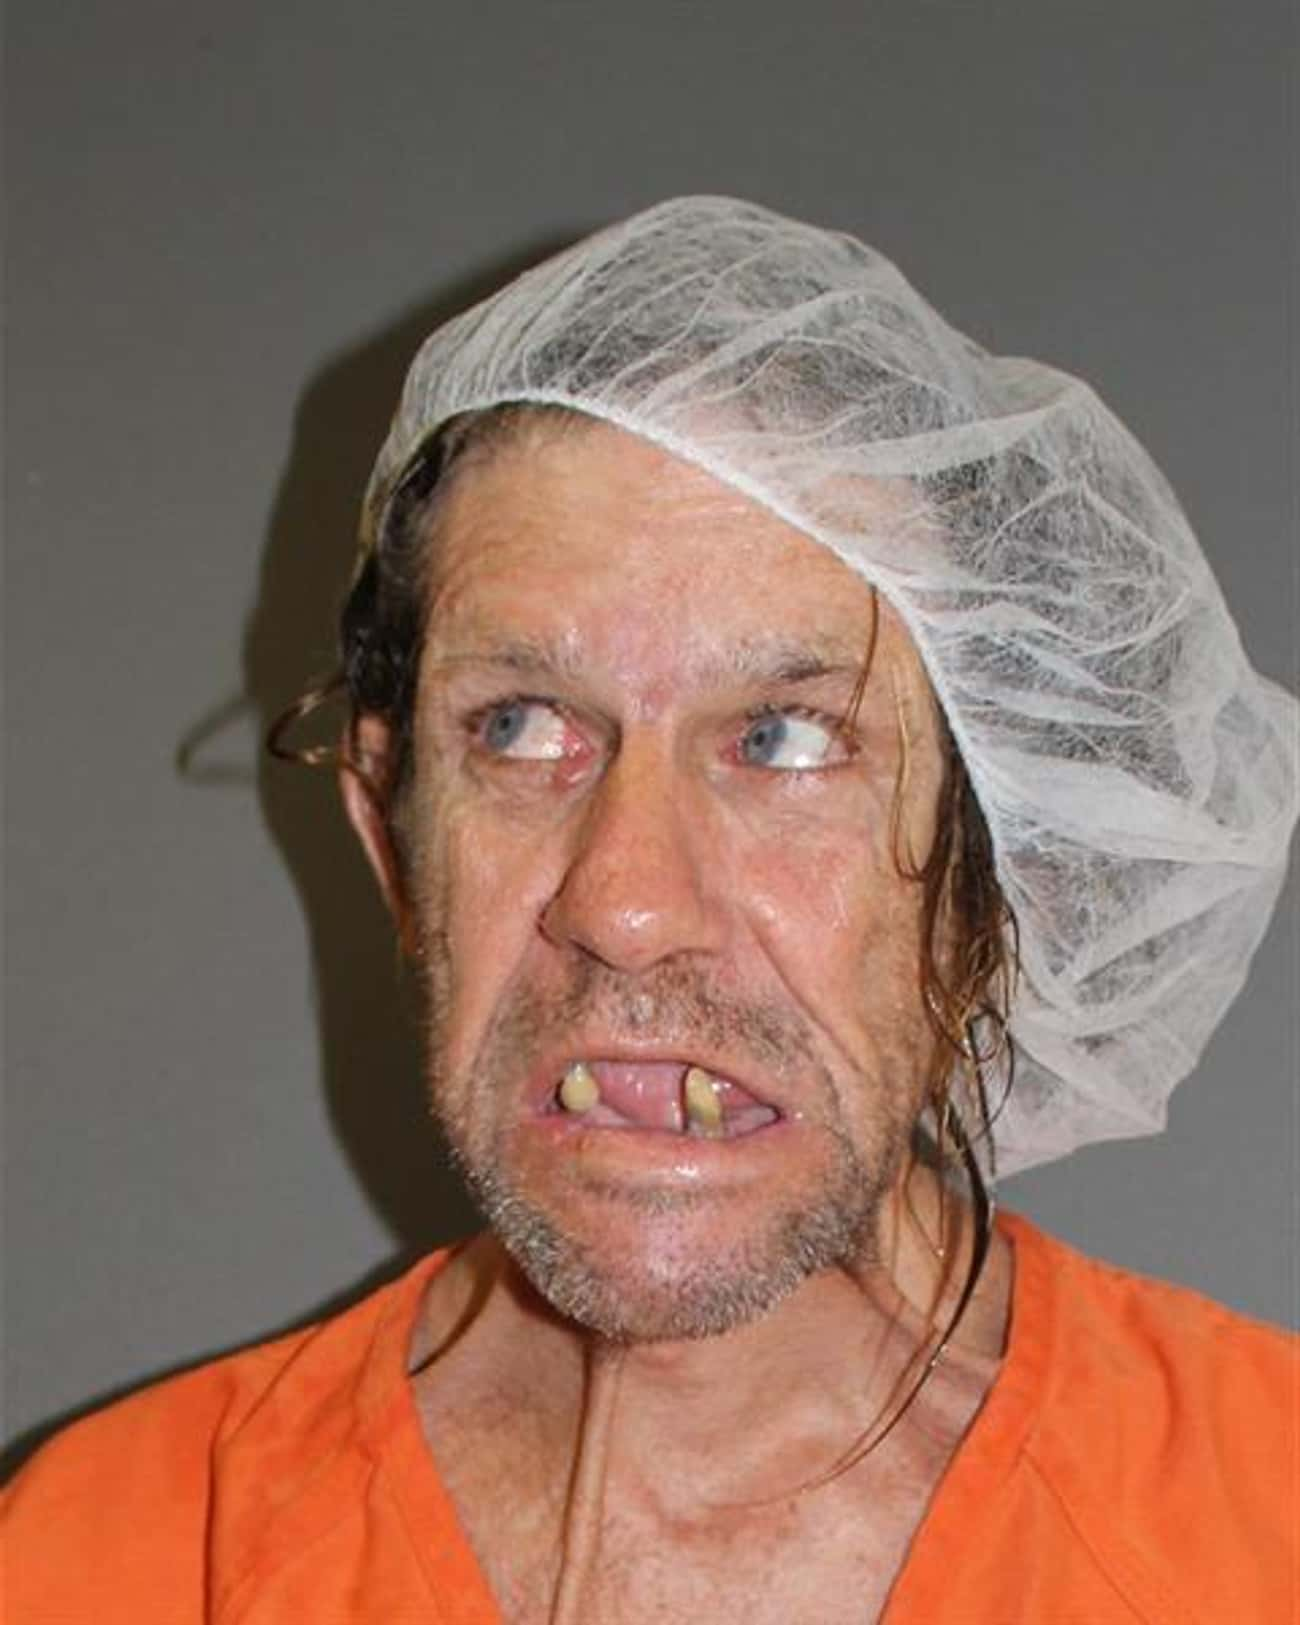 This Mugshot Is Your Anti-Drug is listed (or ranked) 1 on the list The Creepiest (Funny) Mugshots Ever